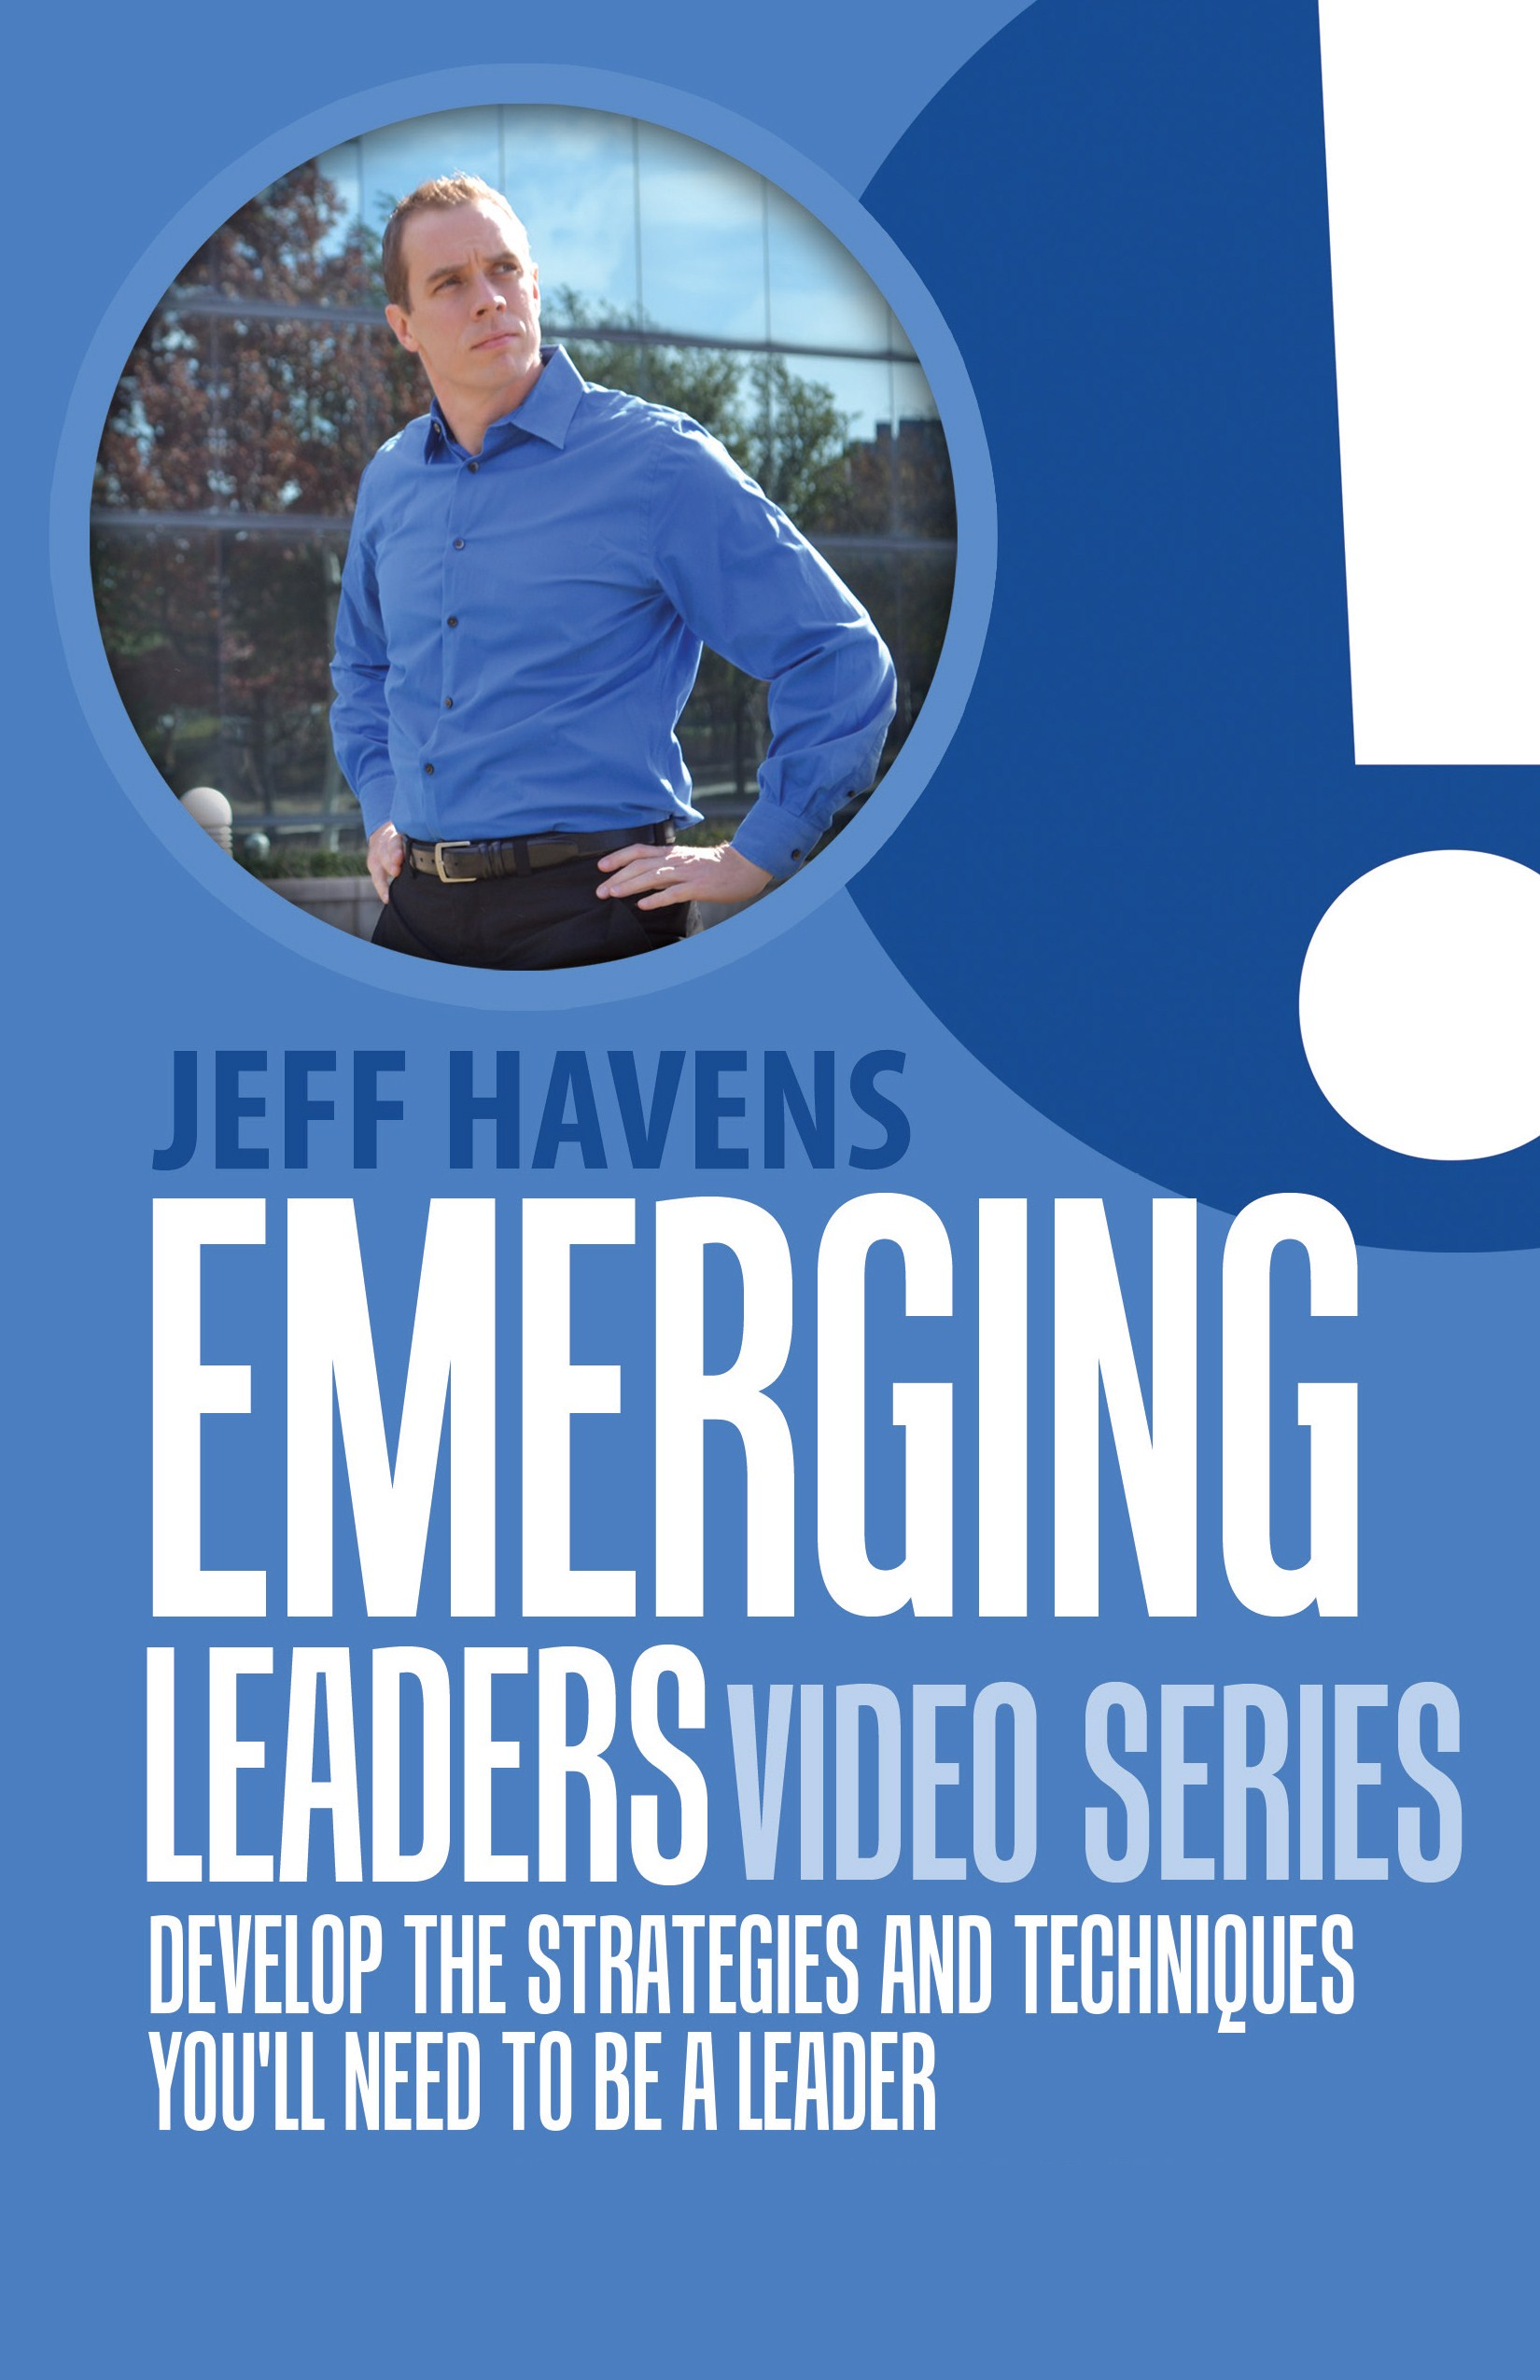 Emerging Leaders Video Series: Develop the Strategies and Techniques You'll Need to be a Leader